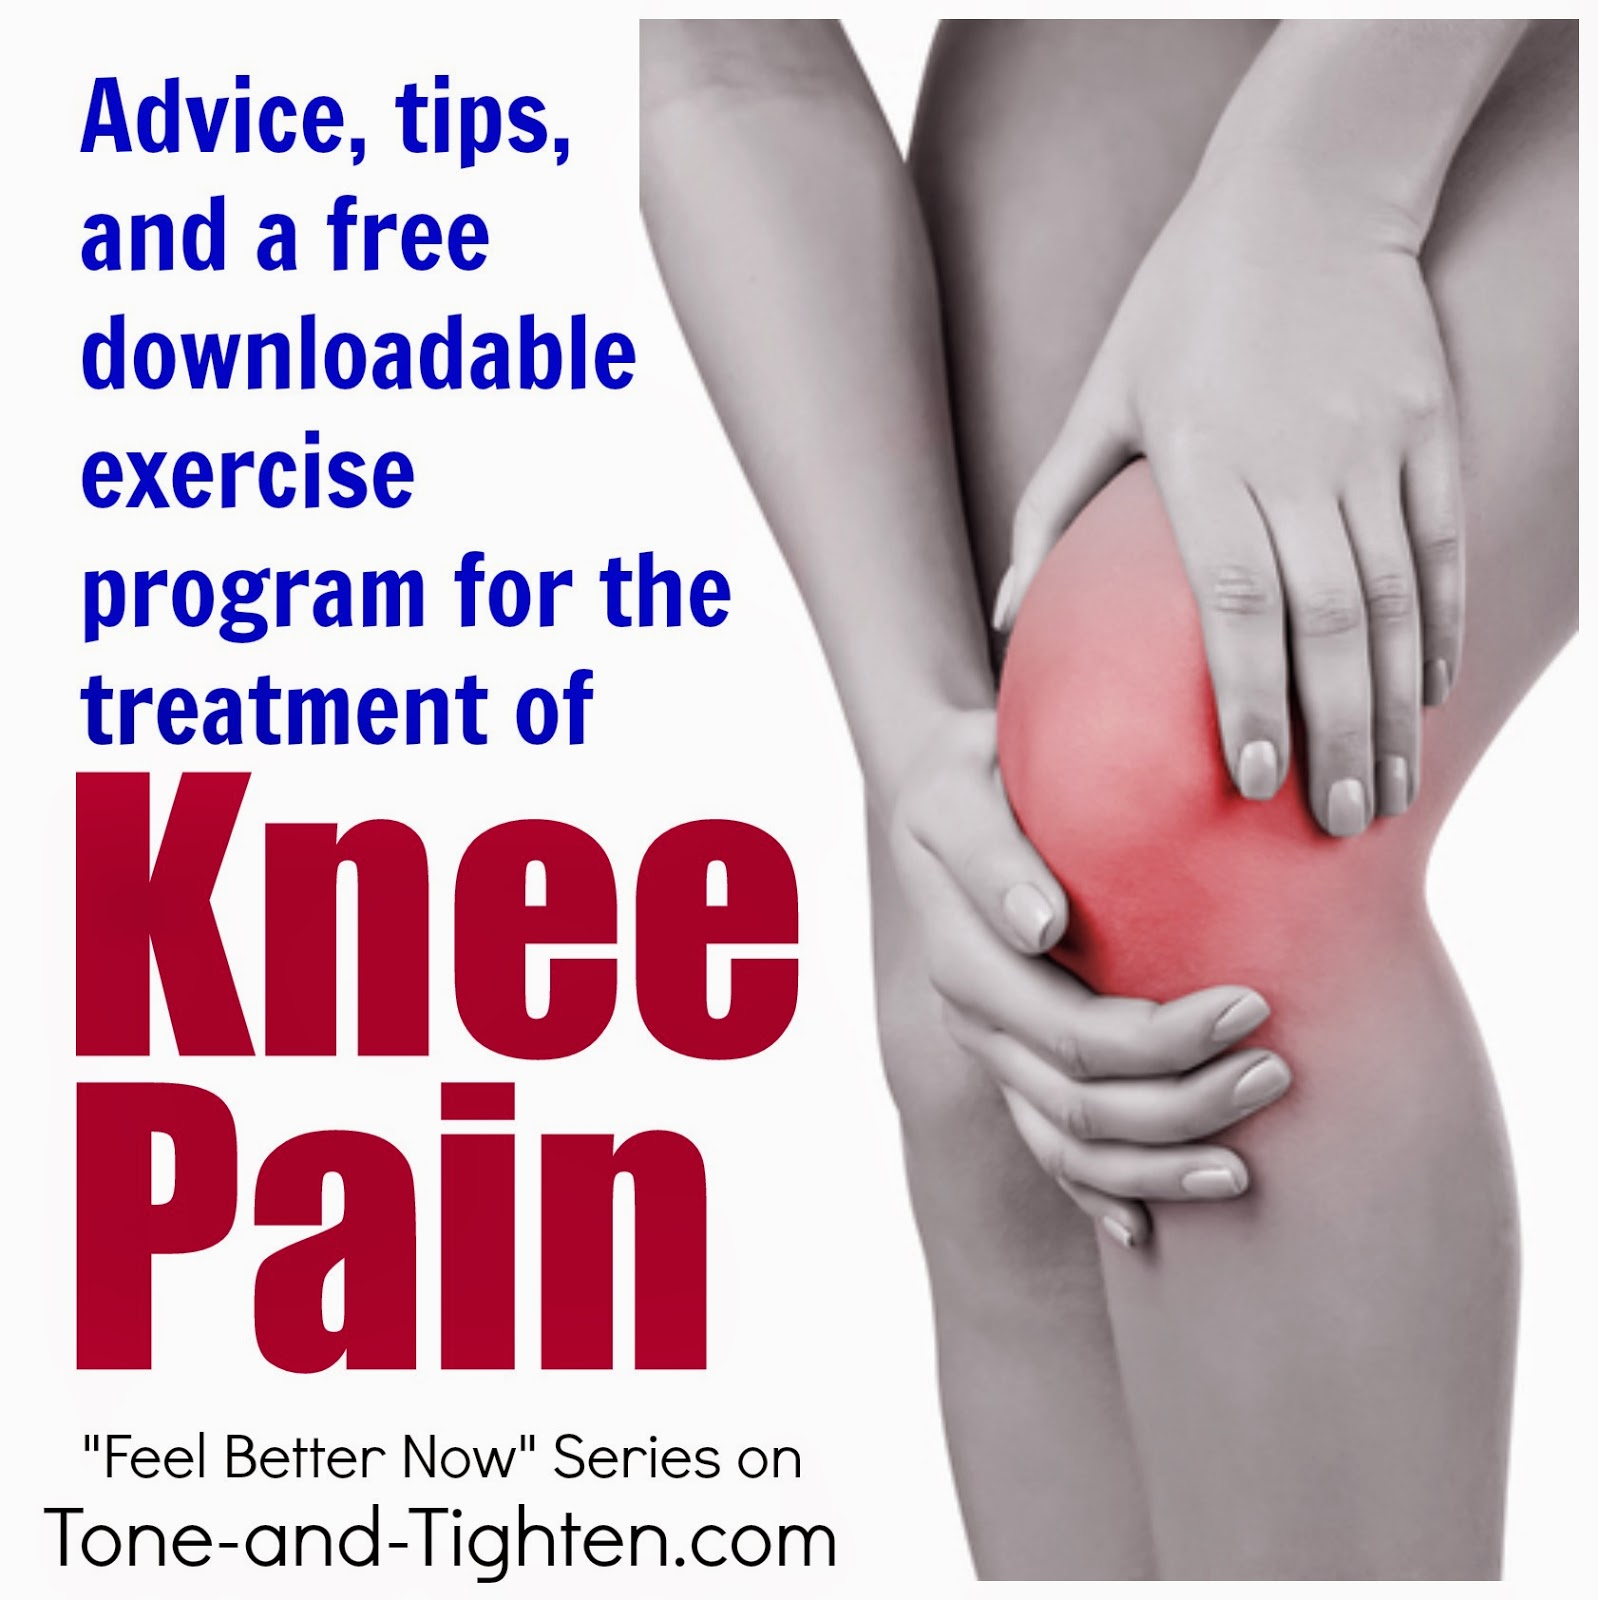 http://tone-and-tighten.com/2014/03/feel-better-now-series-how-to-treat-knee-pain-free-download.html